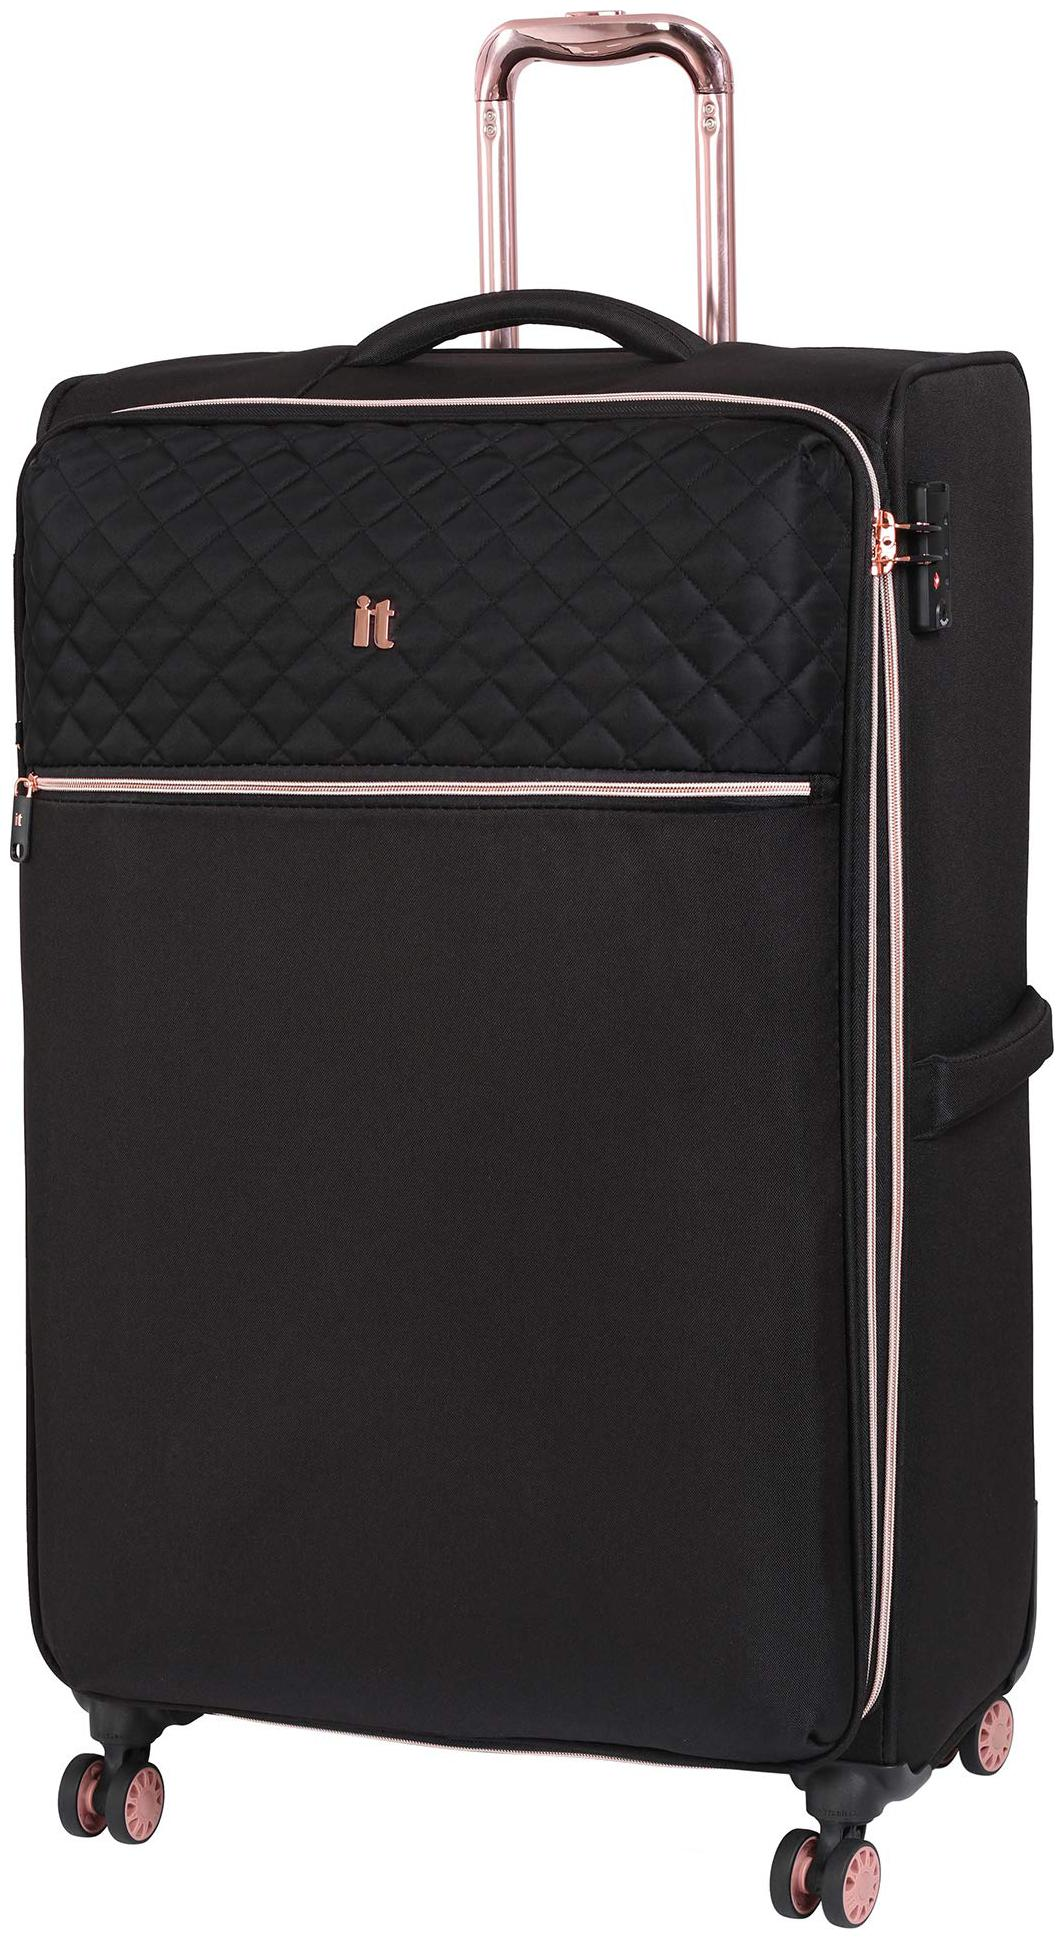 https://assetscdn1.paytm.com/images/catalog/product/B/BA/BAGIT-LUGGAGE-PPL-T108248499964737/1563363981939_0..jpg